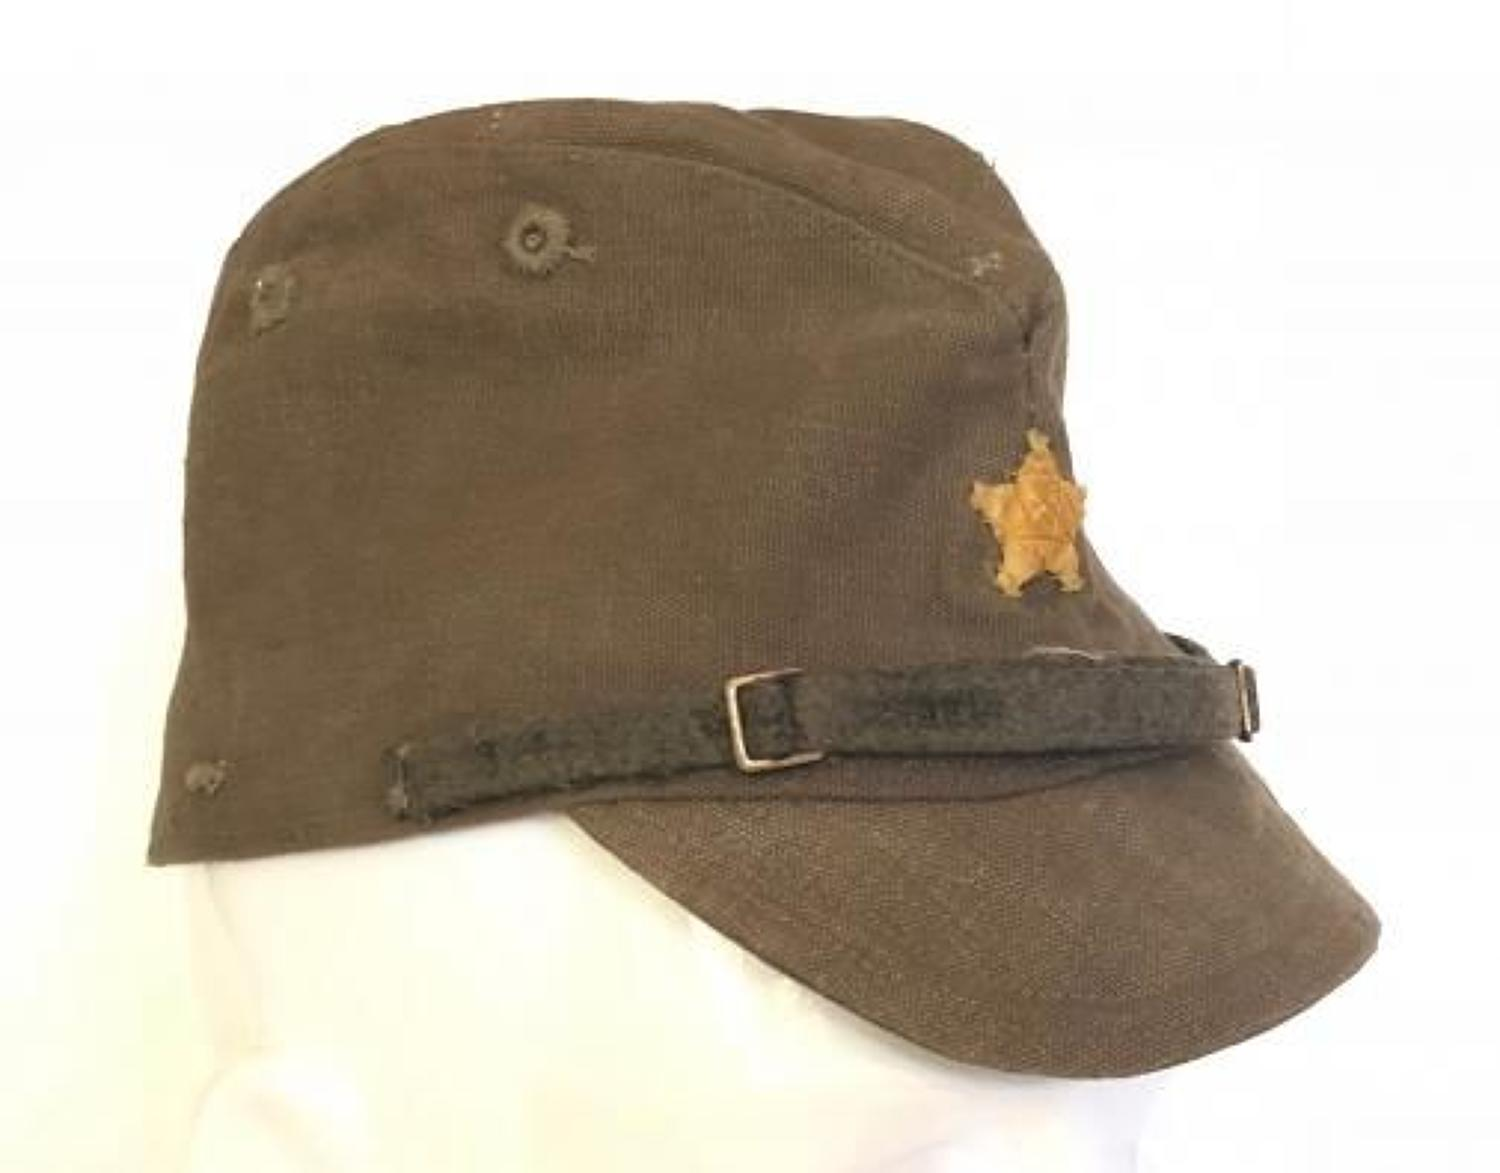 WW2 Japanese Army Other Rank's Cap.